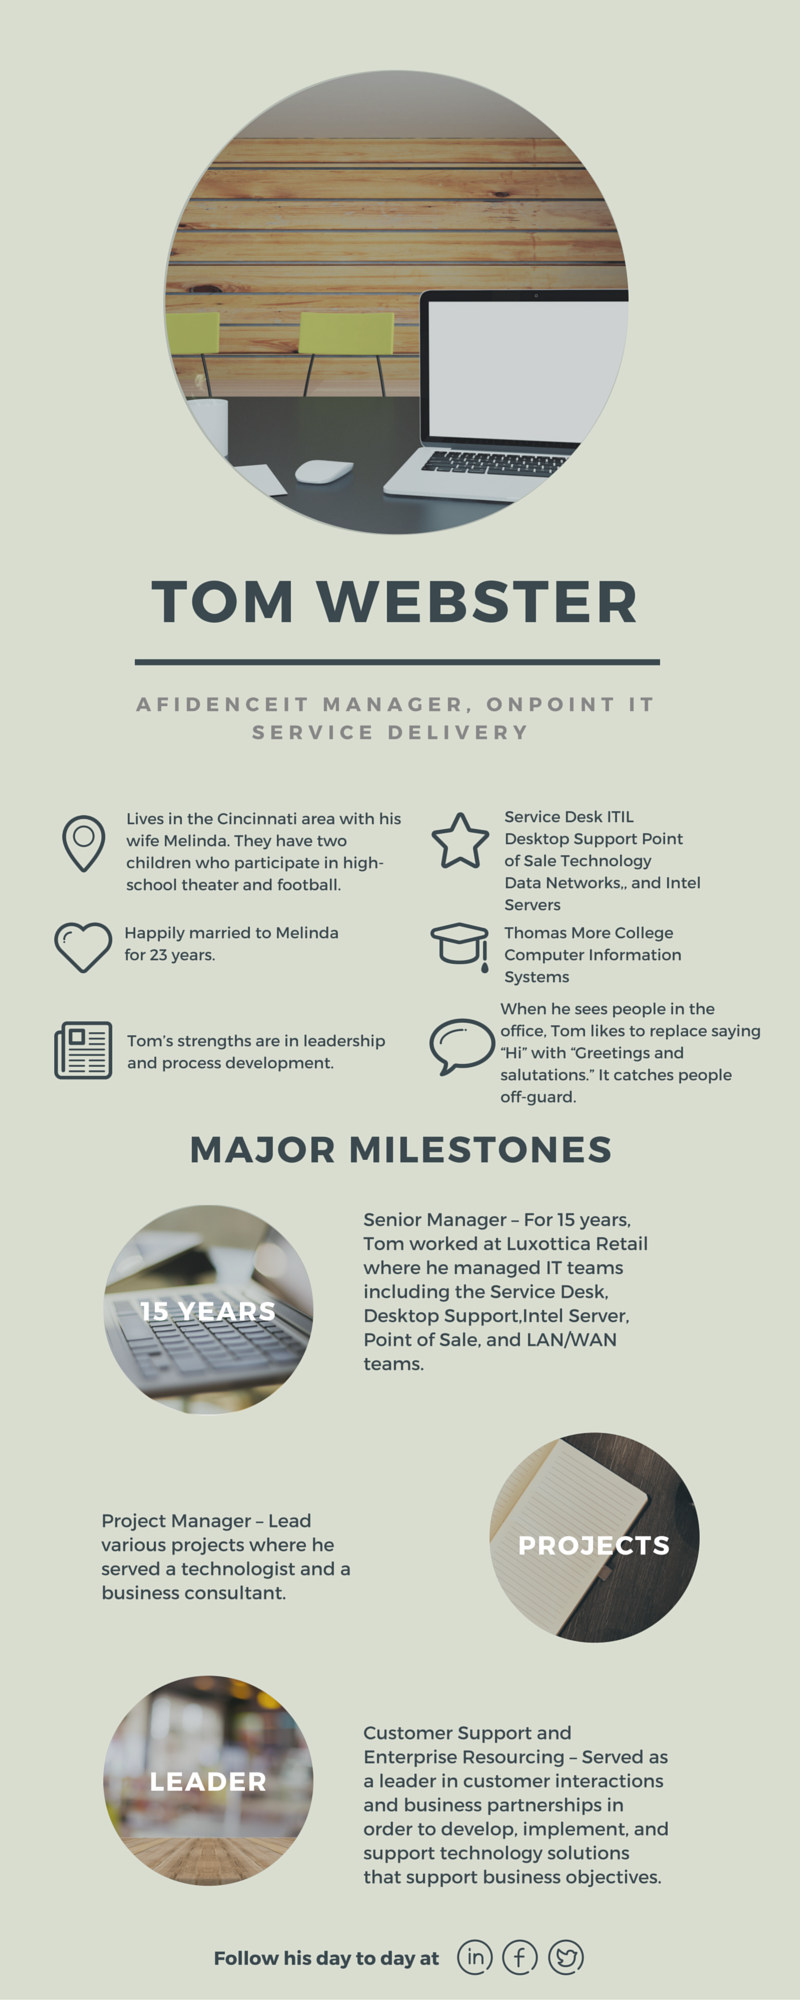 Meet Tom Webster Infographic